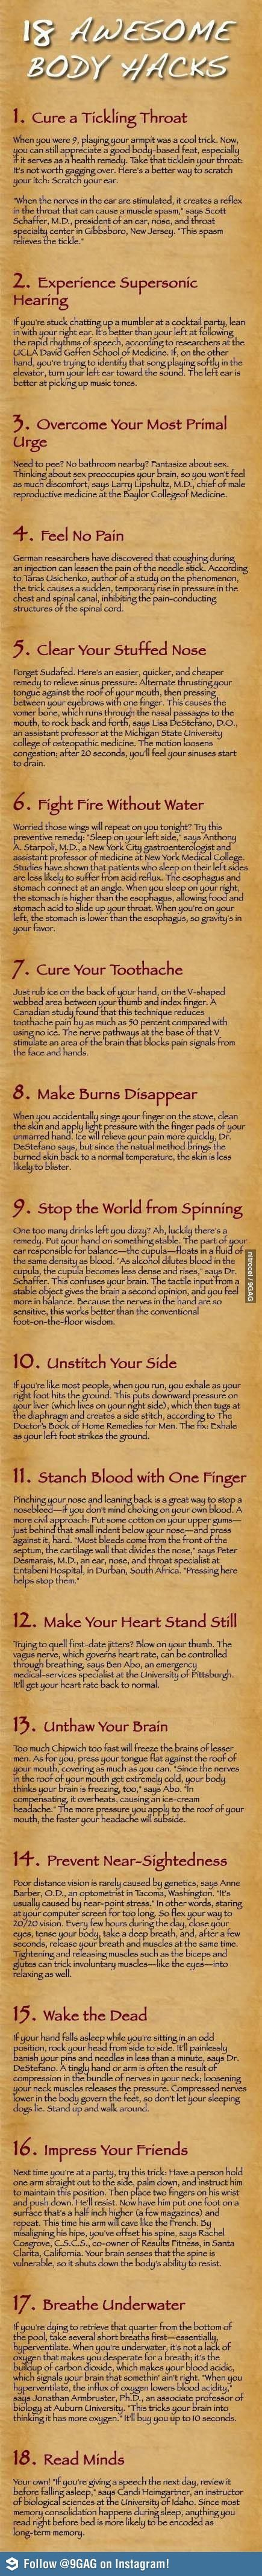 18 Awesome Body Hacks, Except #17, don't do that.. you could blackout and die (it happens a lot).